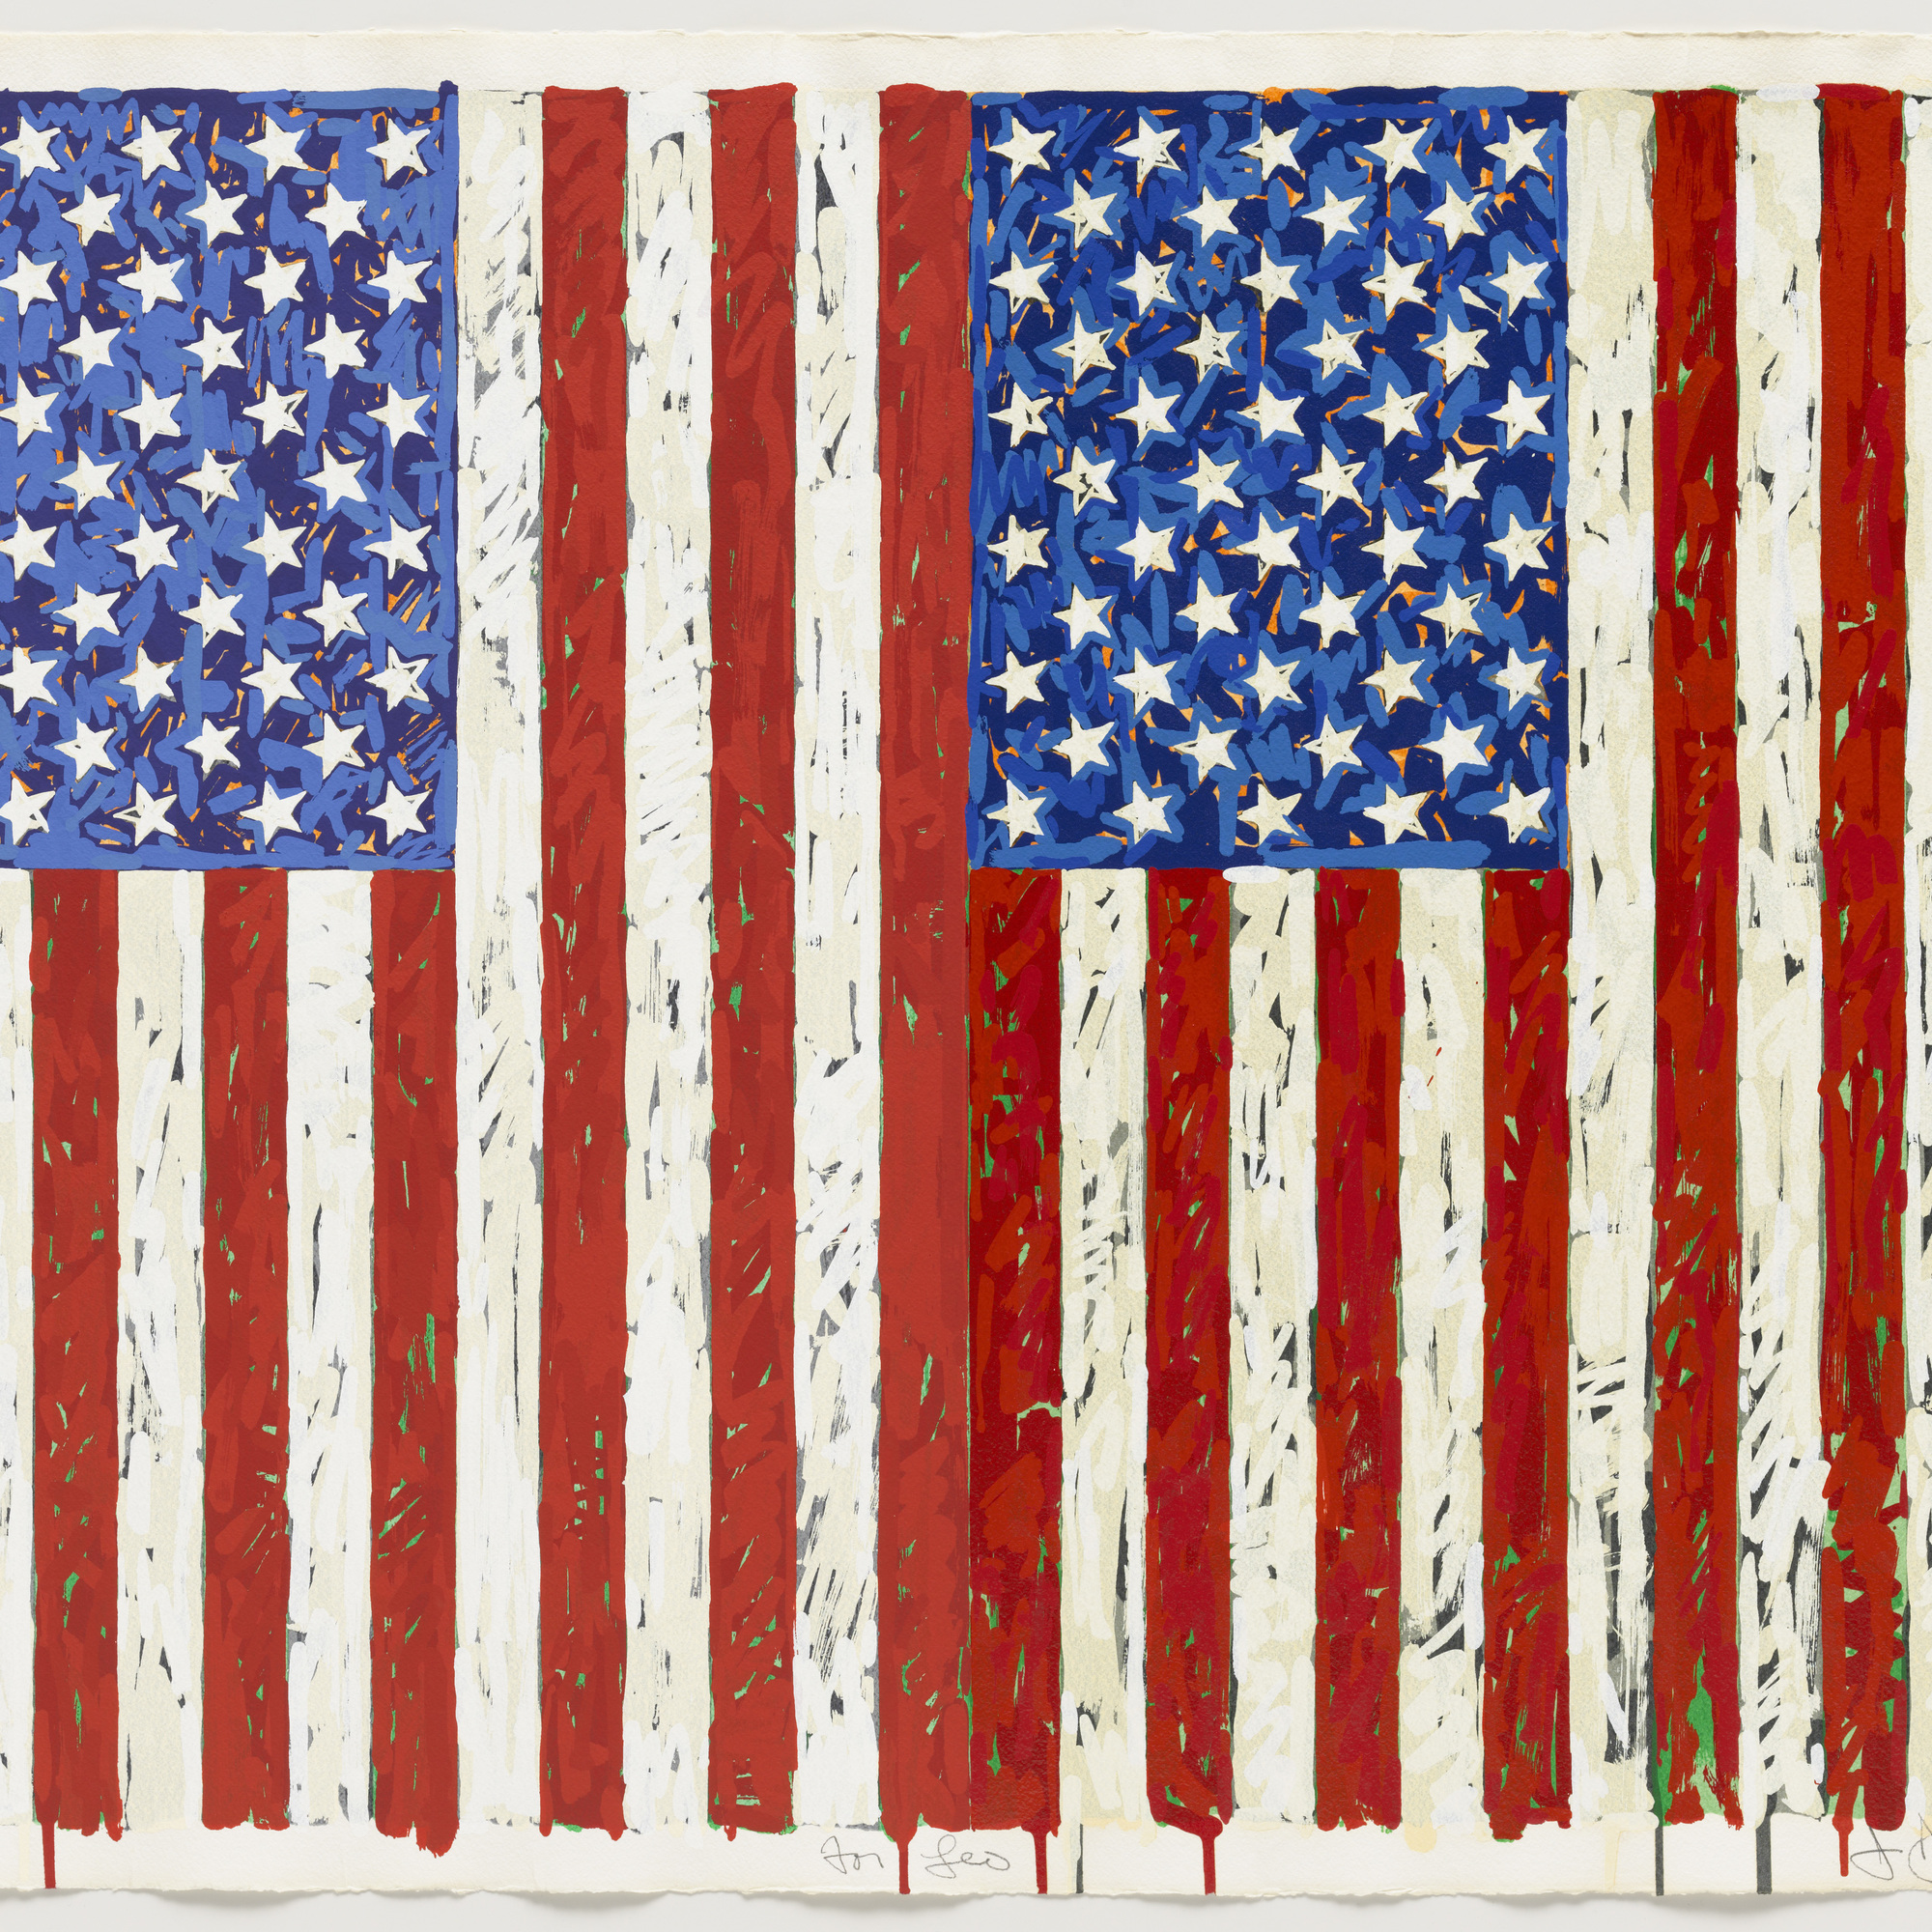 "Jasper Johns. Flags I. 1973. Screenprint, 27 3/8 x 35 1/4"" (69.5 x 89.5 cm). Publisher: the artist and Simca Print Artists Inc., New York. Printer: Simca Print Artists Inc., New York. Edition: artist's proof before the edition of 65. Gift of Barbara Bertozzi Castelli, New York, 2011. © 2012 Jasper Johns/Licensed by VAGA, New York"